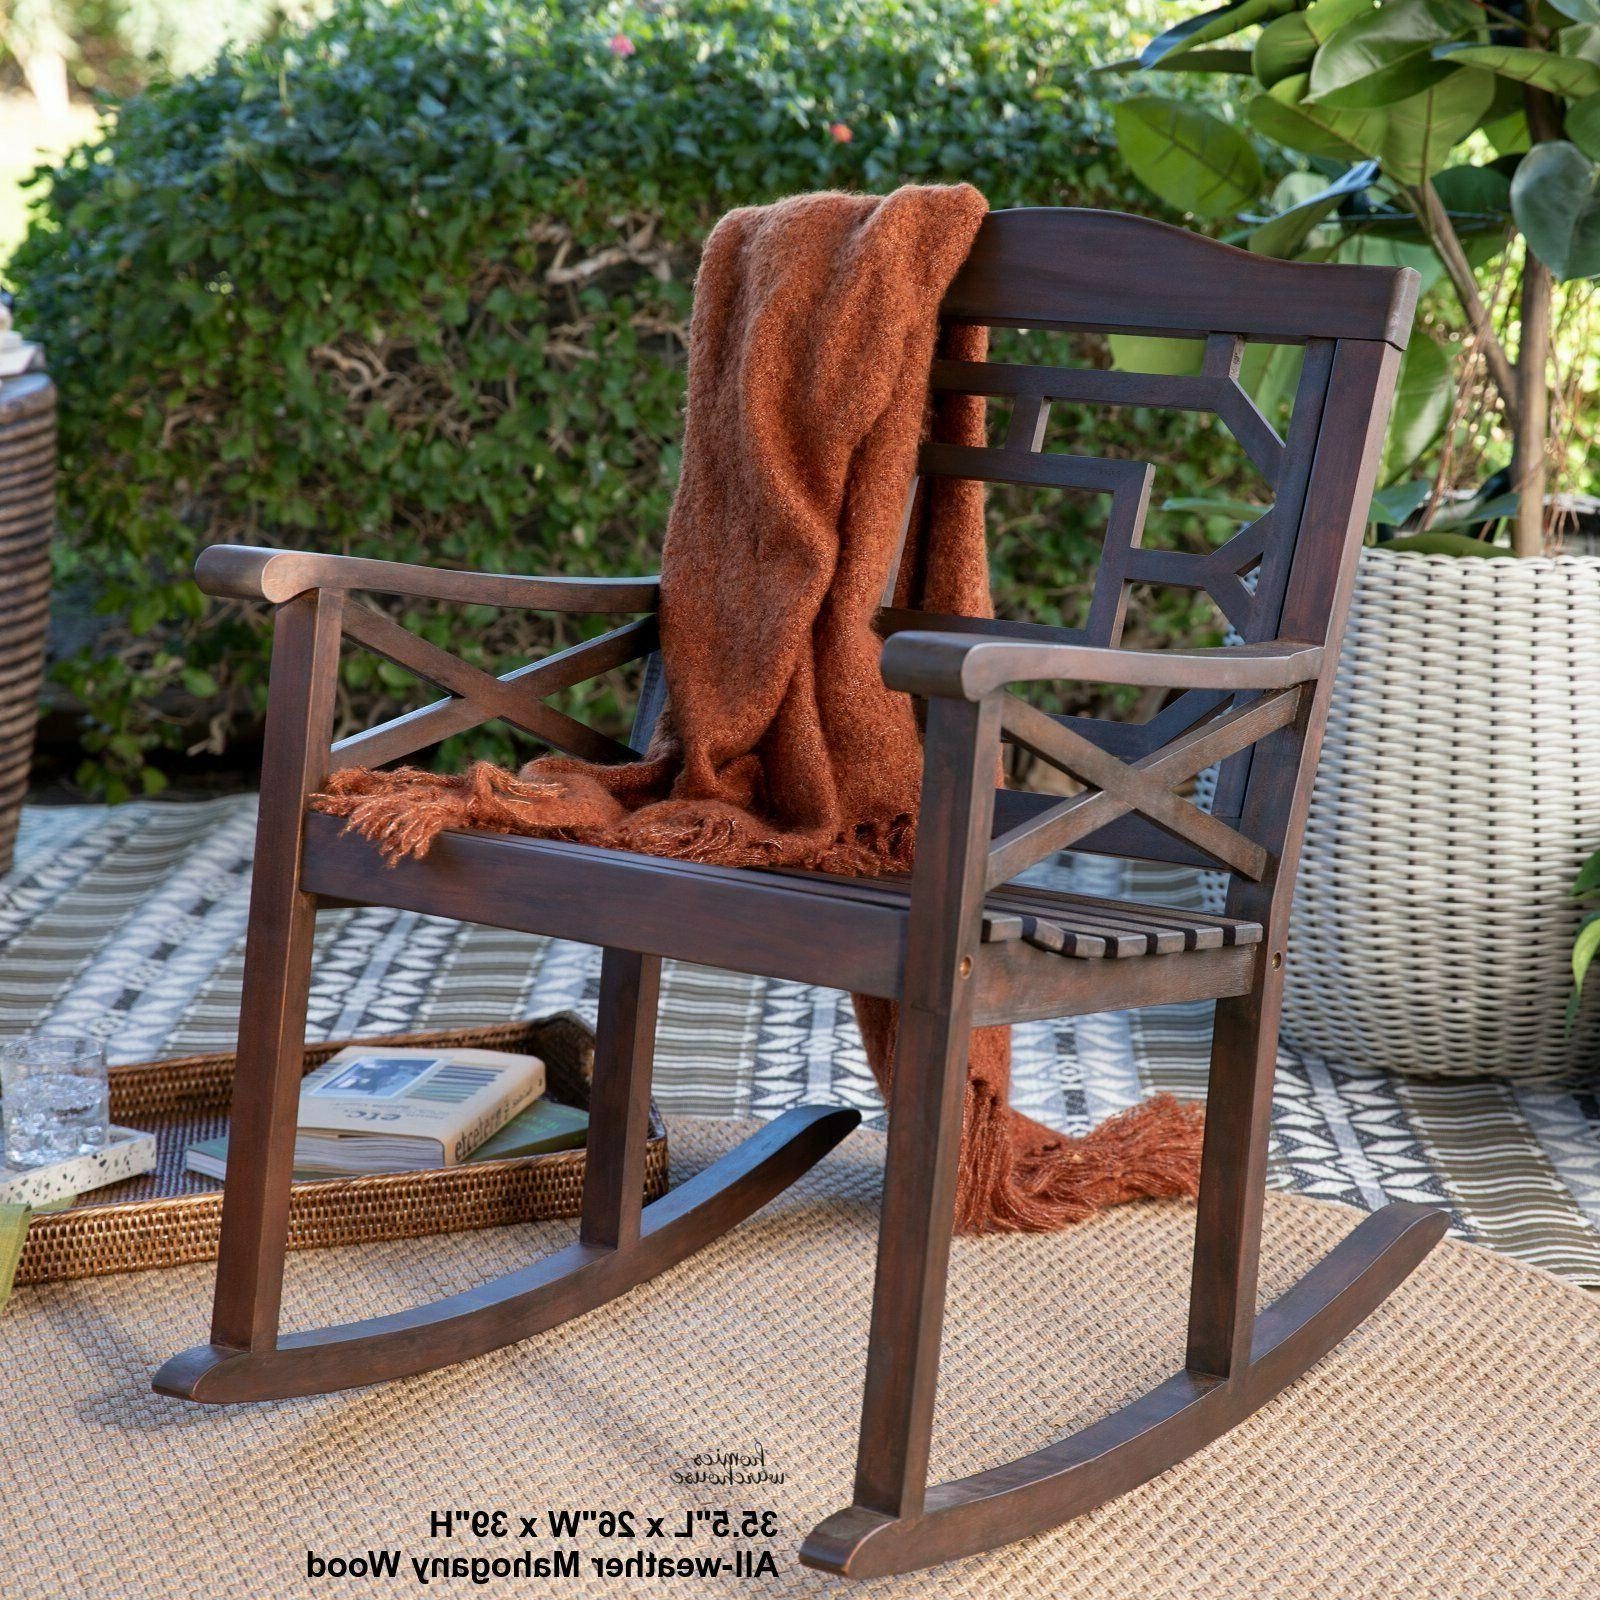 Outdoor Wood Rocking Chair Patio Porch Rocker Garden Balcony